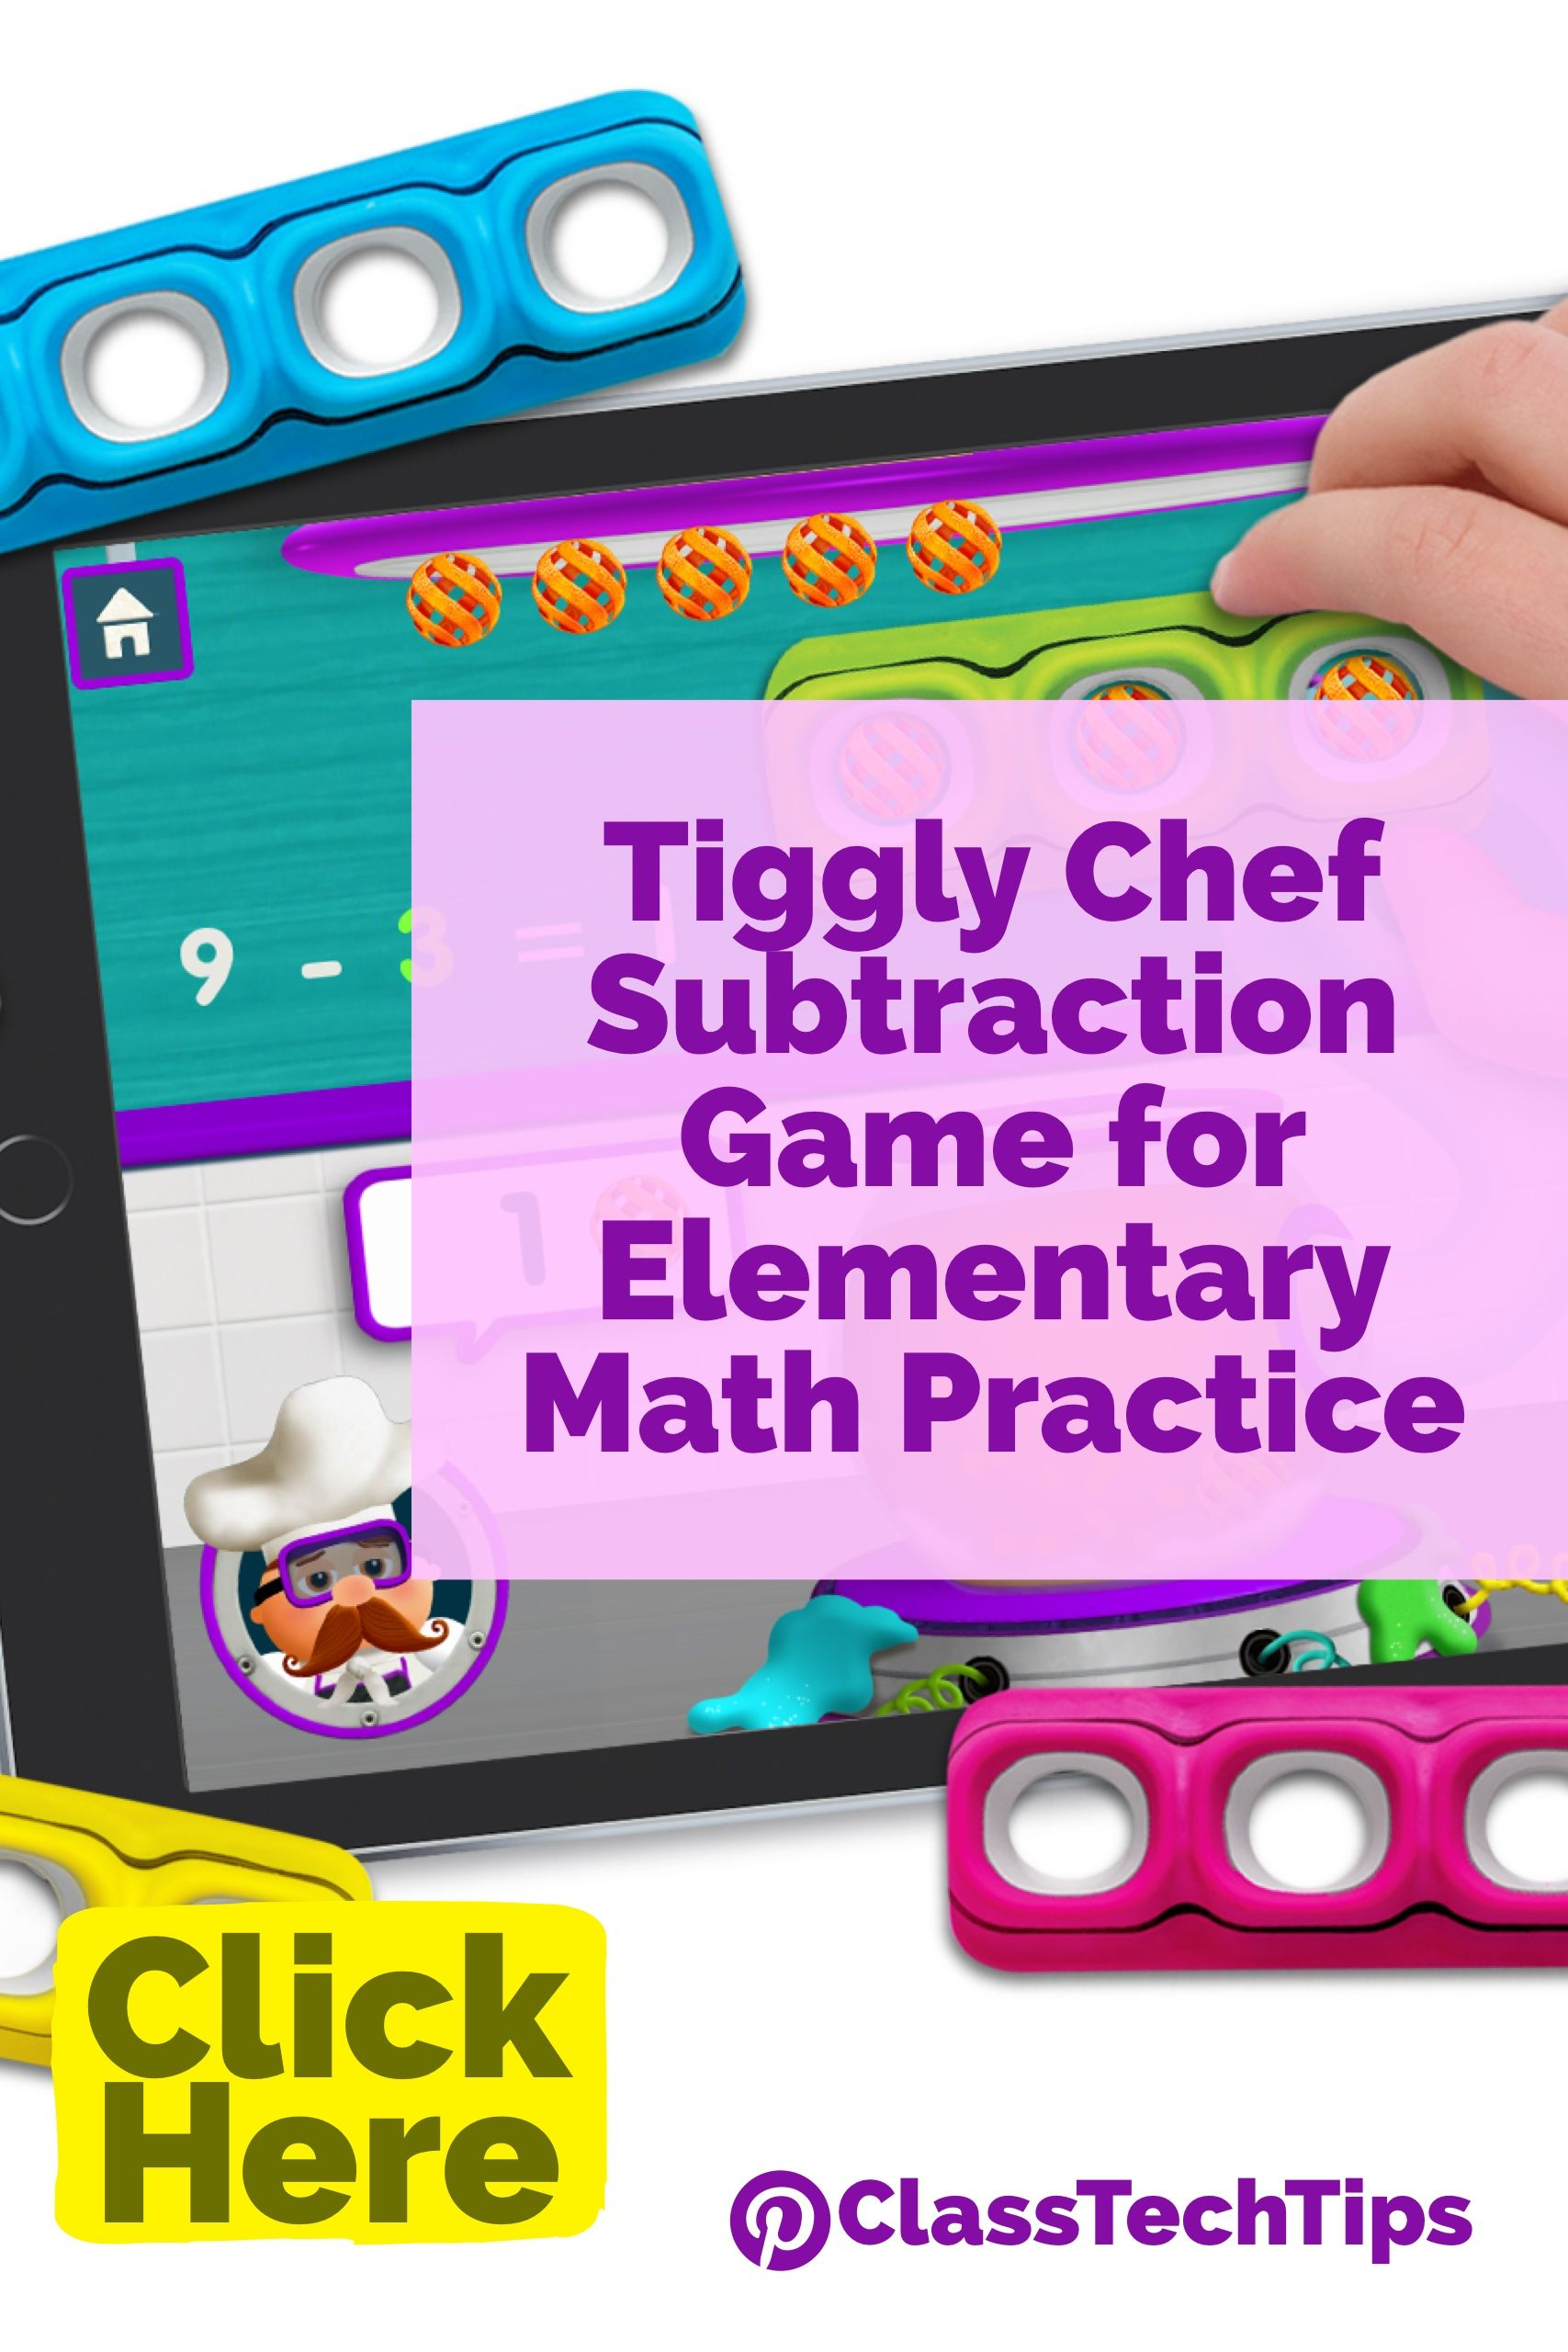 Tiggly Chef Subtraction Game for Elementary Math Practice ...